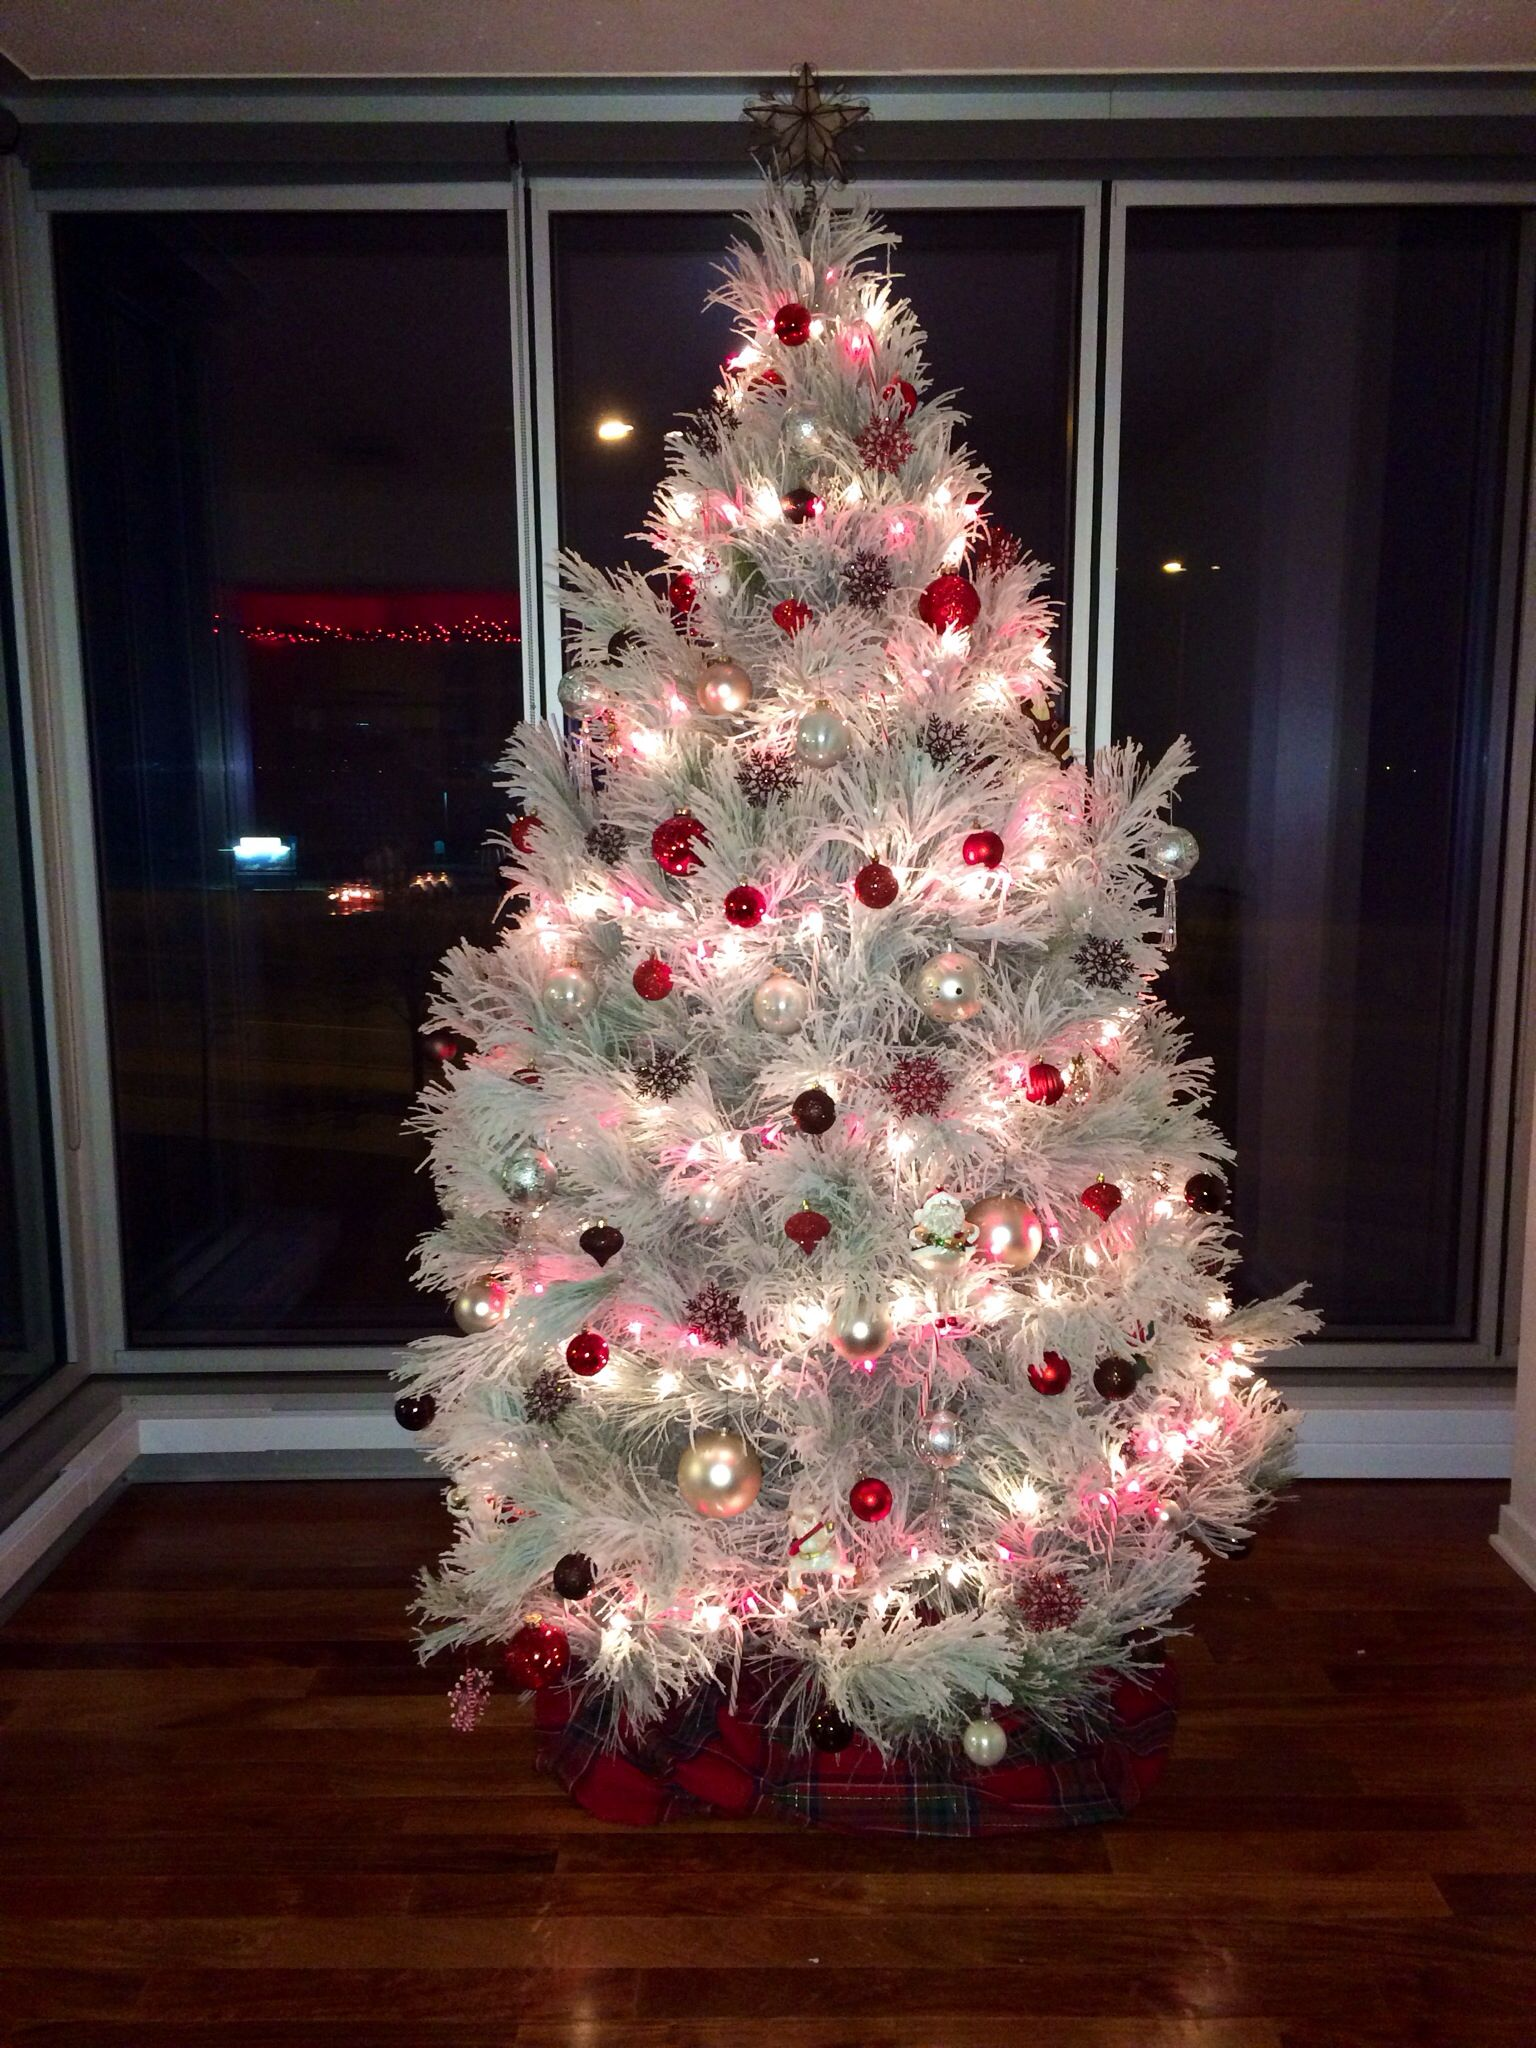 Decorate the christmas tree fa la la la - This Is What A Real Live Flocked Christmas Tree Looks Like Beautiful Full Branches